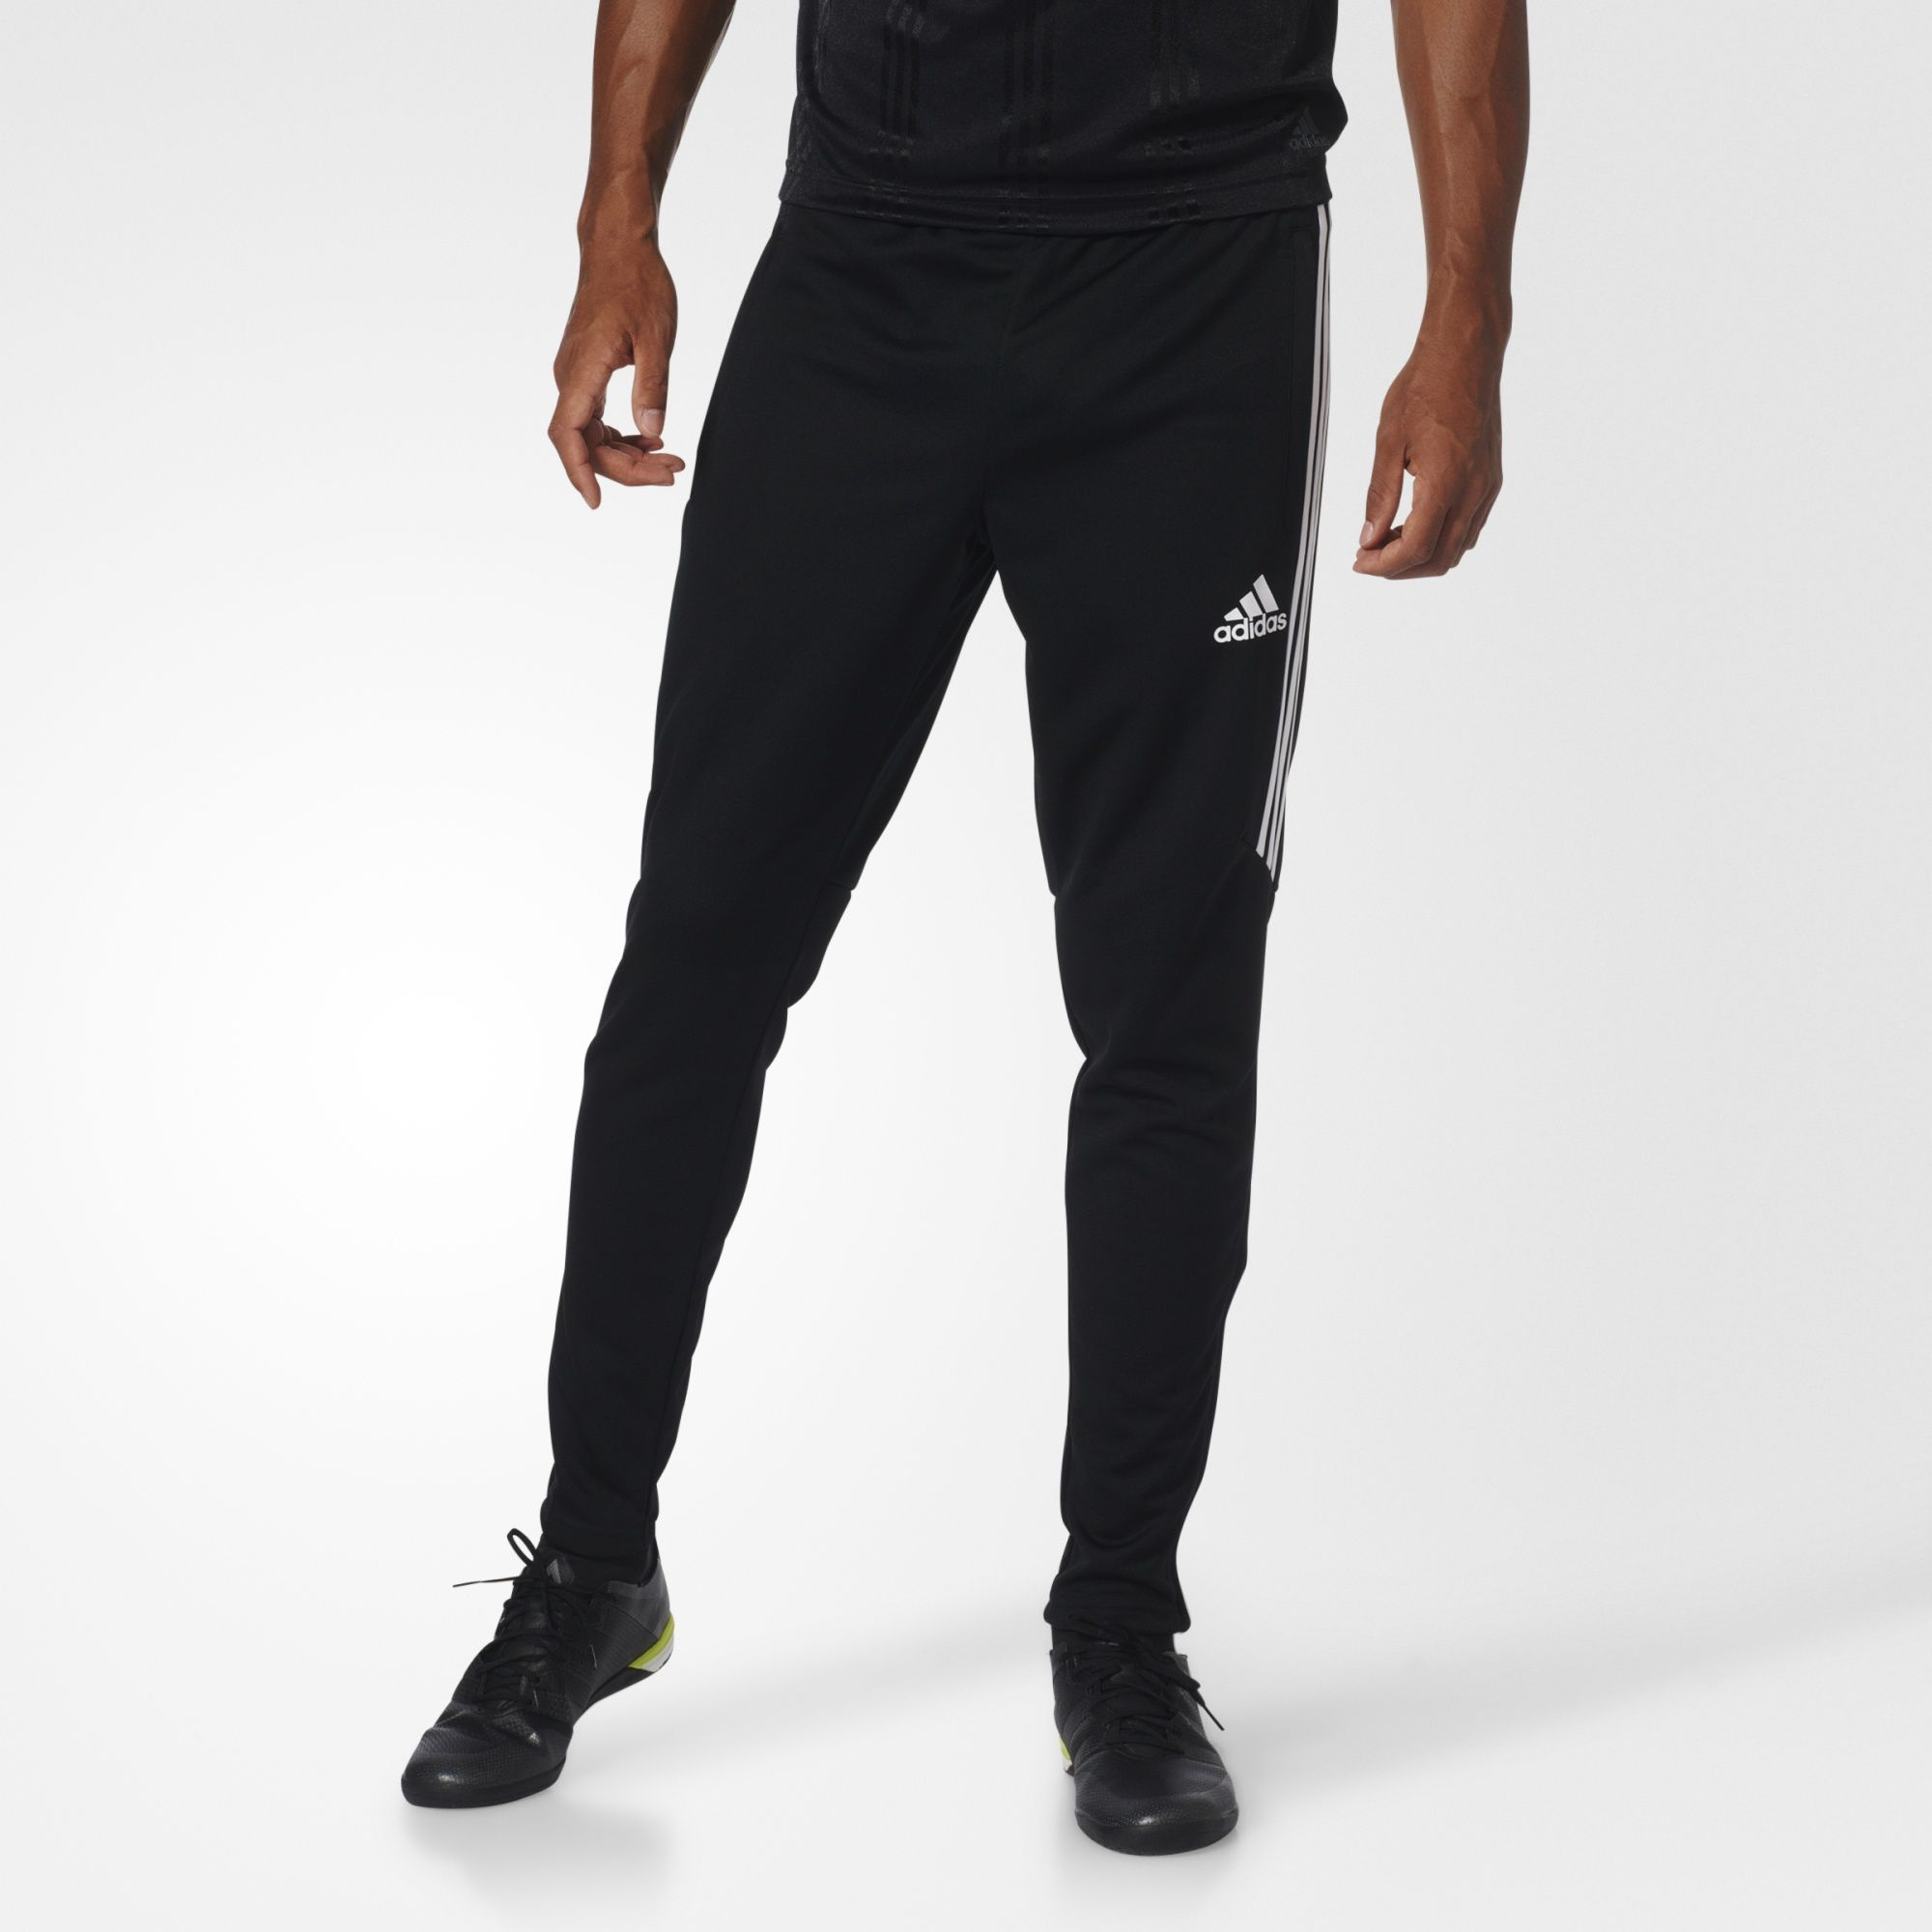 Tiro Joggers Mens Adidas PantsOsei's 17 Fashion Training bf6y7g